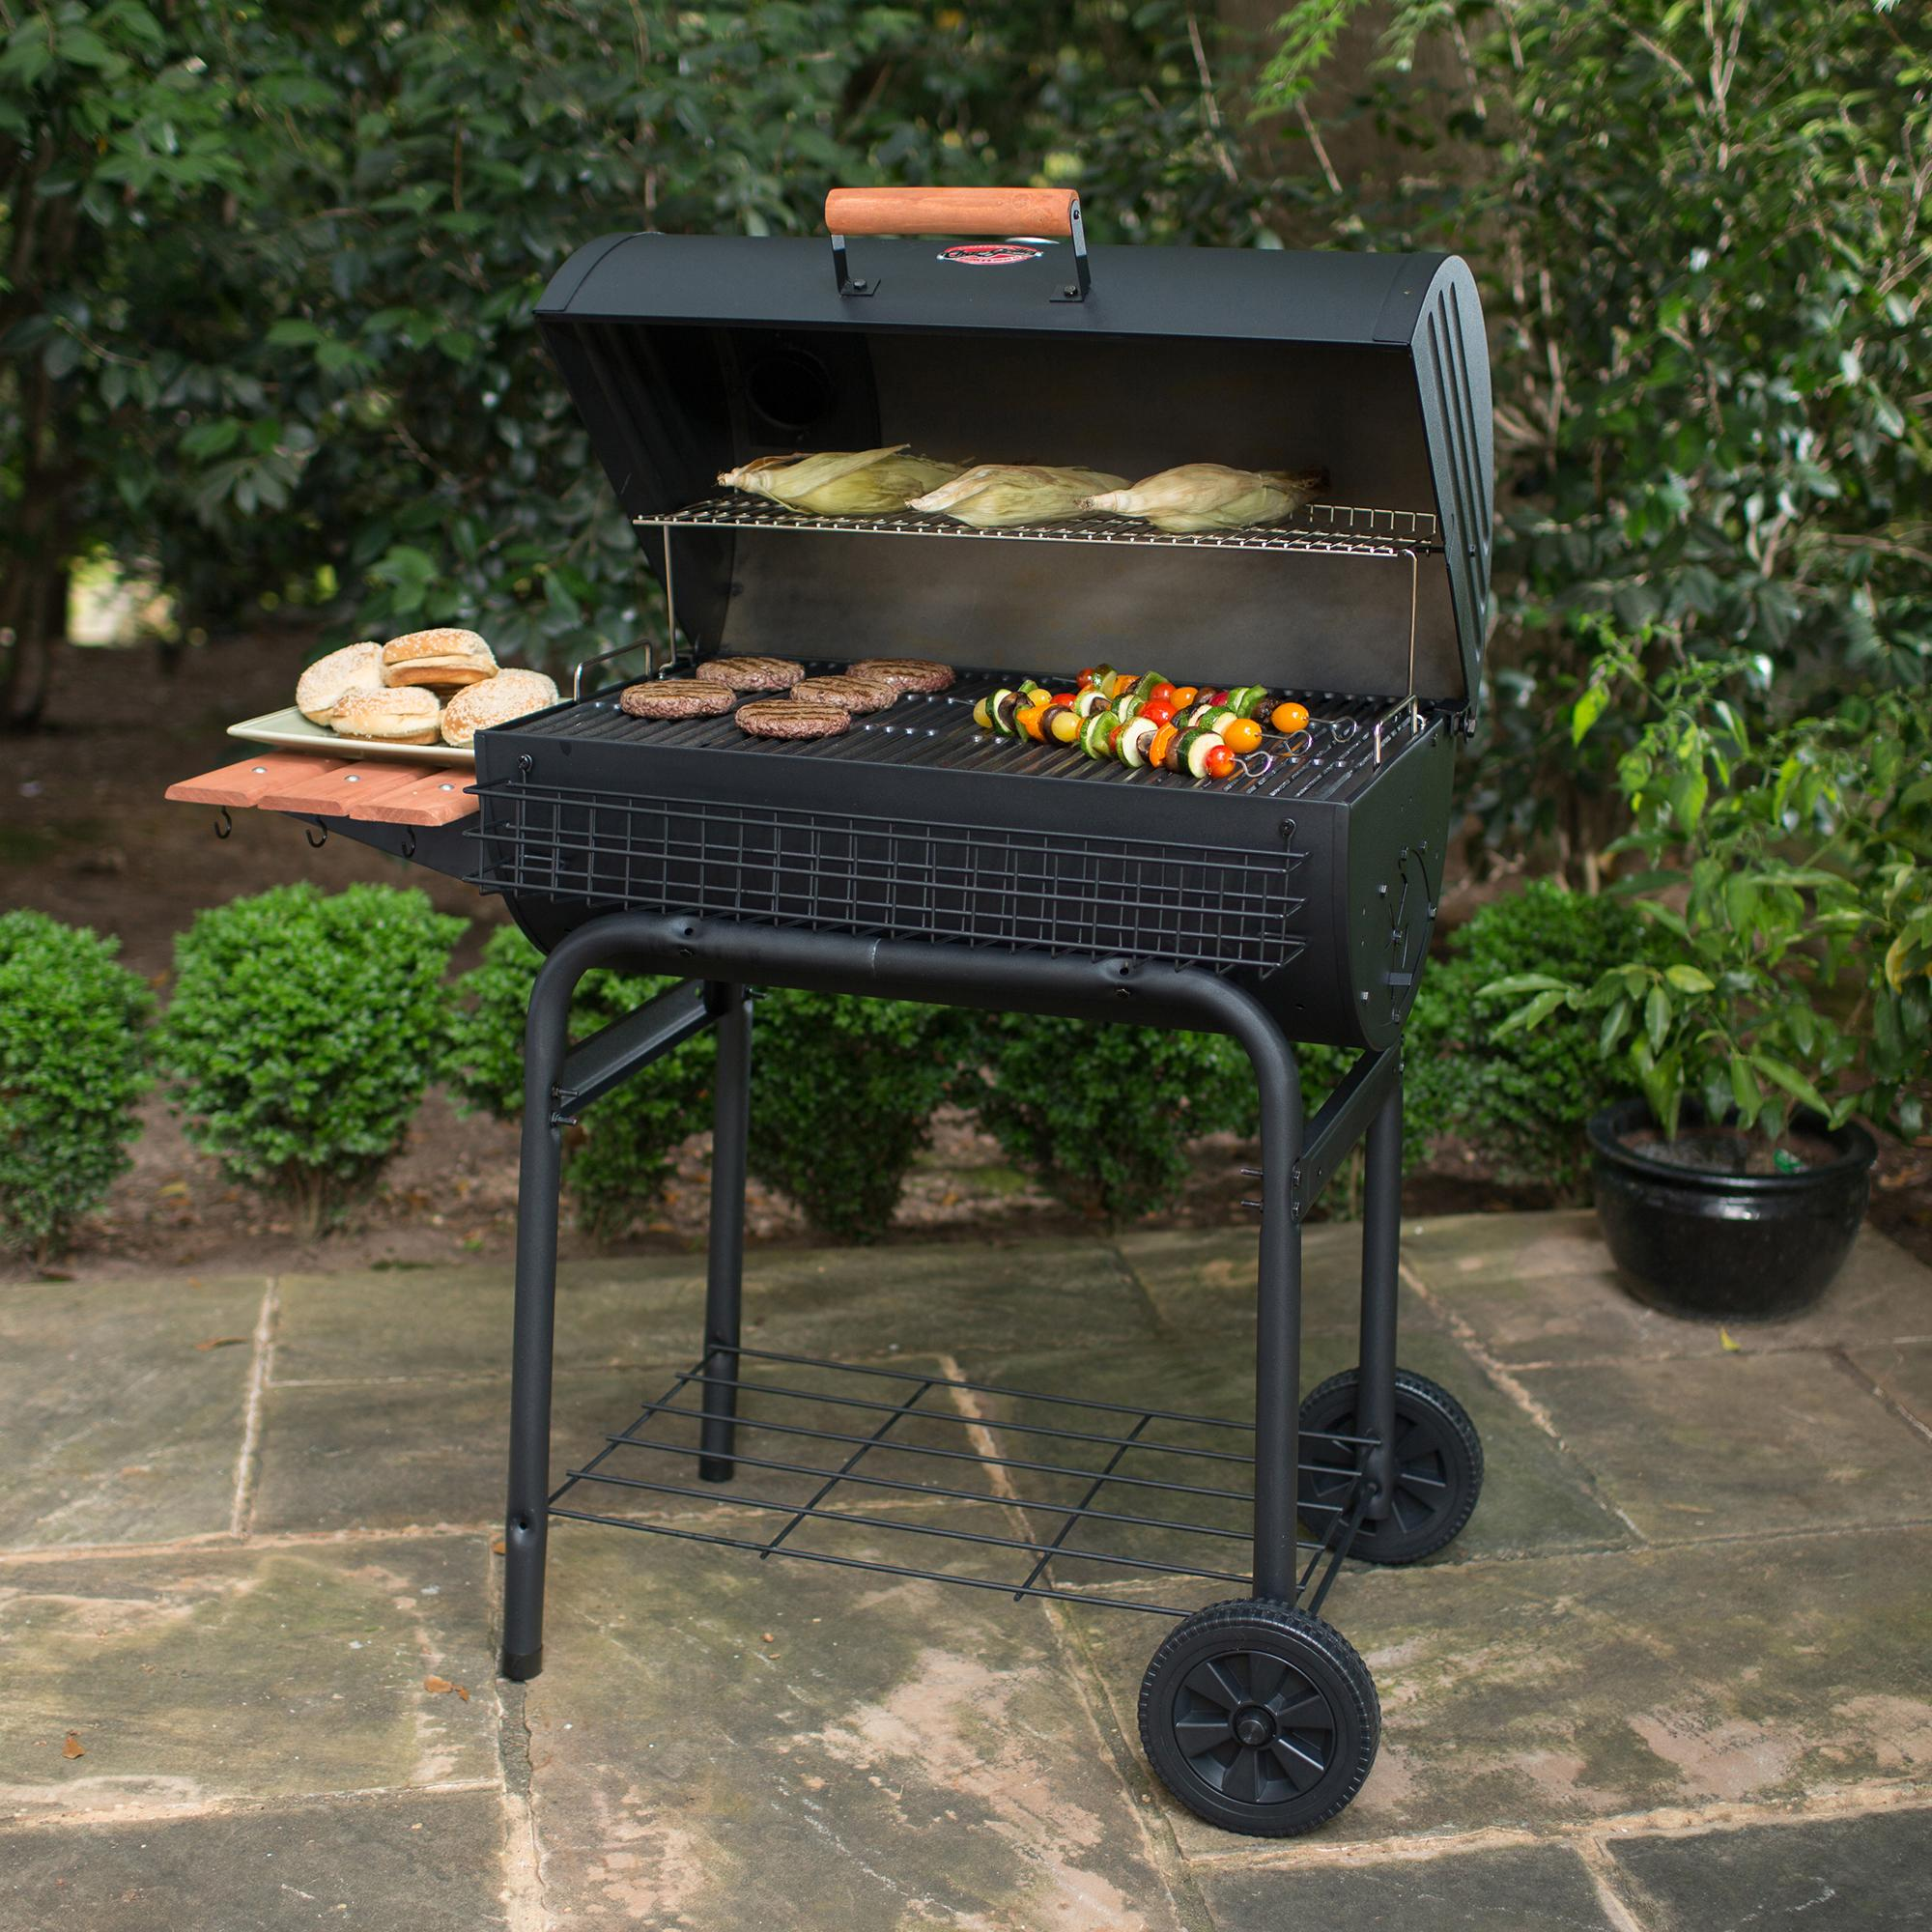 charcoal grill smoker barbecue weber bbq heavy duty steel outdoor patio backyard ebay. Black Bedroom Furniture Sets. Home Design Ideas